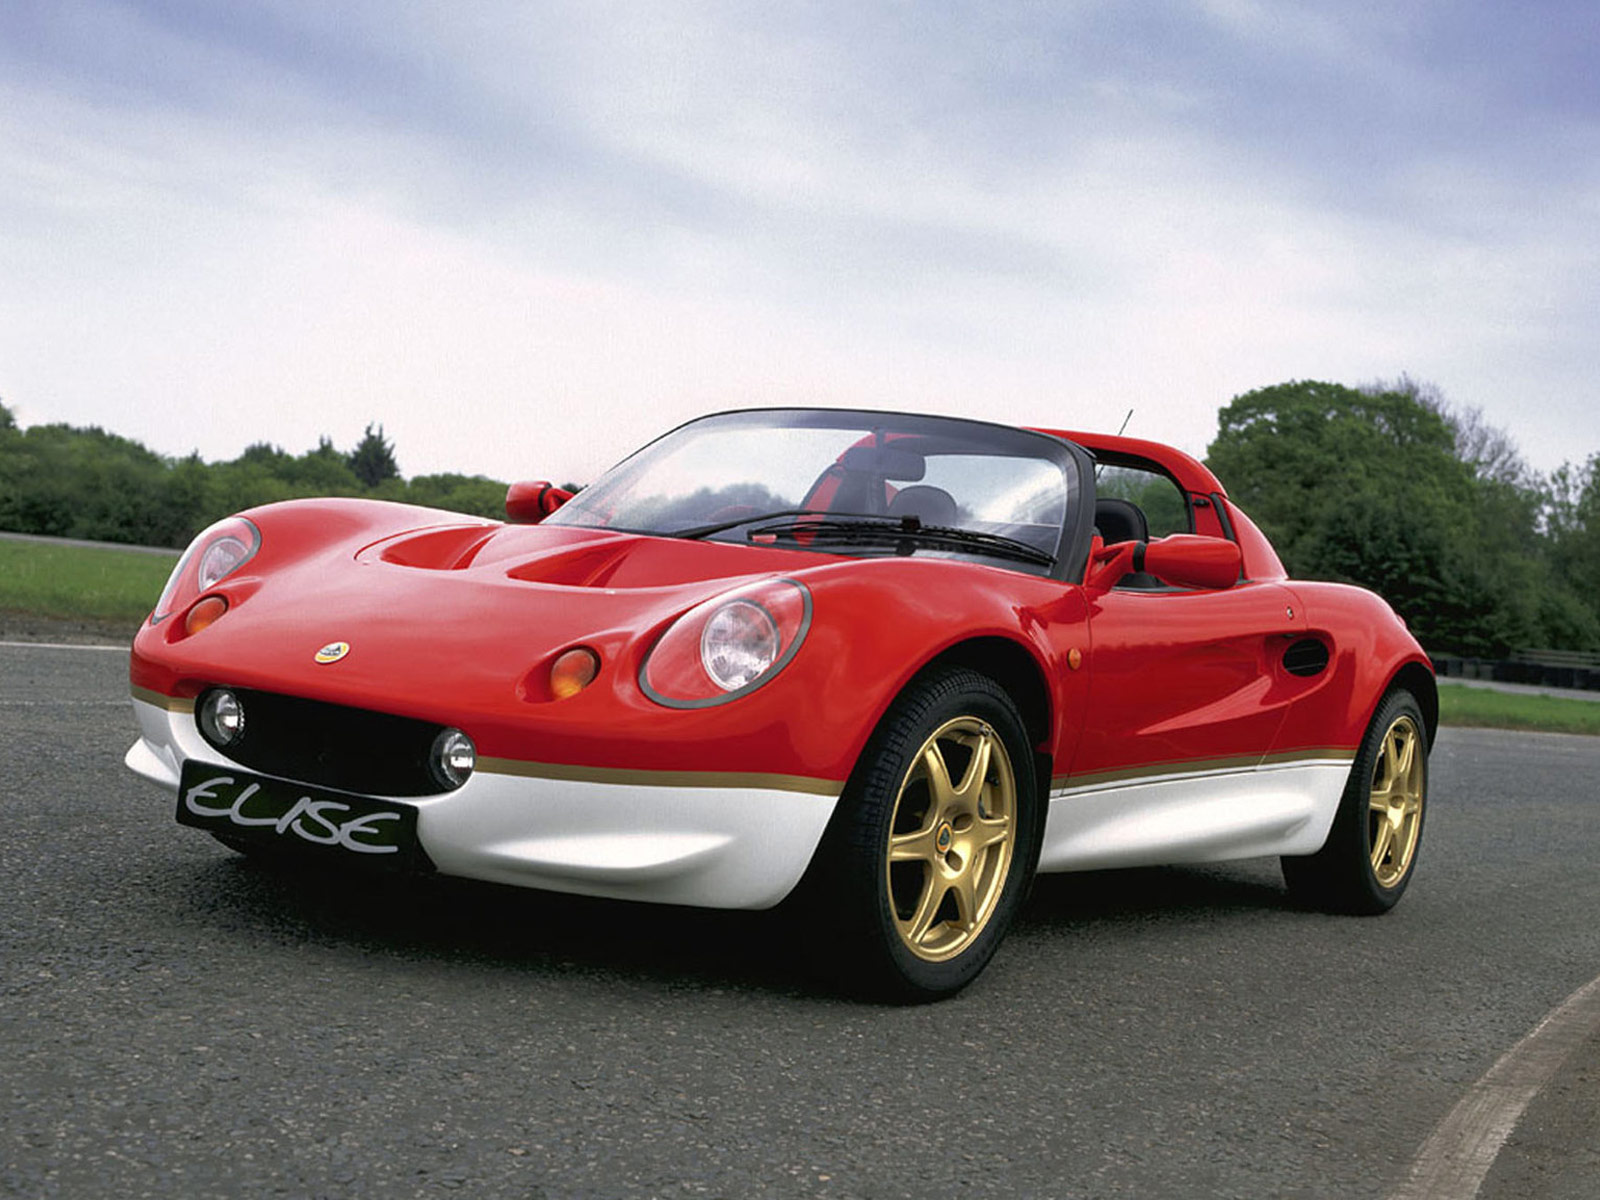 1999 lotus elise car desktop wallpaper. Black Bedroom Furniture Sets. Home Design Ideas